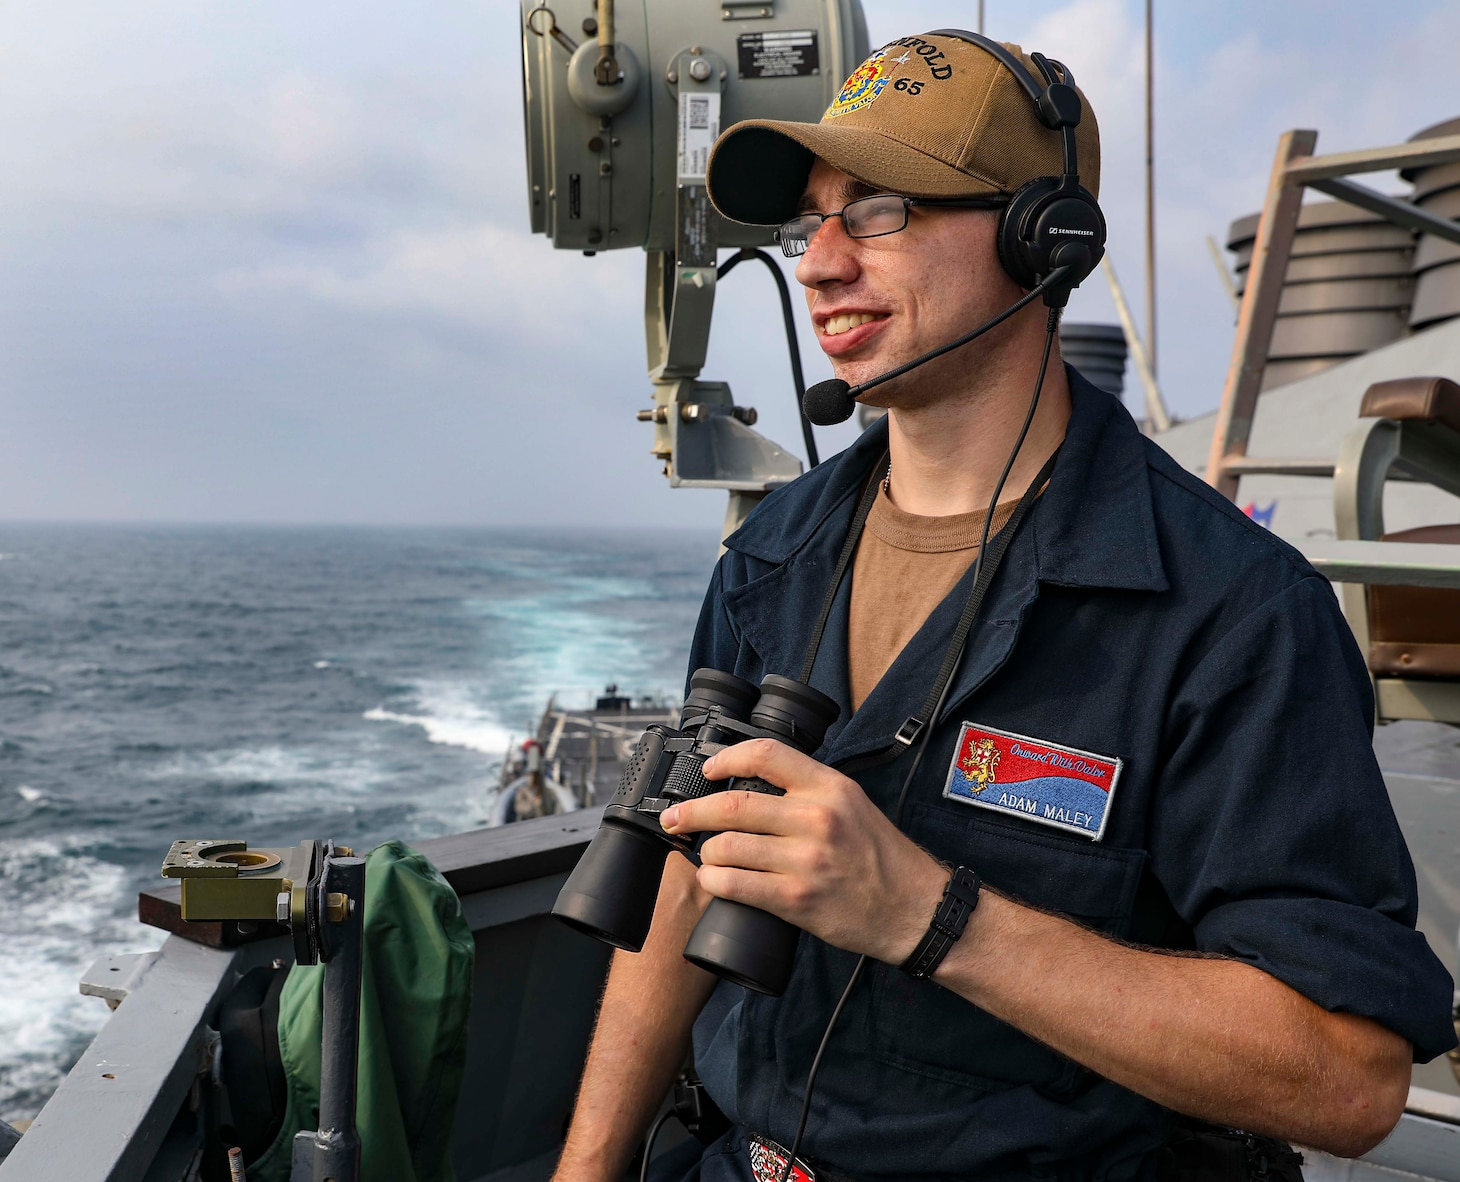 210728-N-FO714-1043 TAIWAN STRAIT (July 28, 2021) Seaman Adam Maley, from Windham, Maine, stands lookout watch on the starboard bridge wing of the Arleigh Burke-class guided-missile destroyer USS Benfold (DDG 65) as the ship transits the Taiwan Strait conducting routine underway operations. Benfold is forward-deployed to the U.S. 7th Fleet area of operations in support of a free and open Indo-Pacific. (U.S. Navy photo by Mass Communication Specialist 1st Class Deanna C. Gonzales)